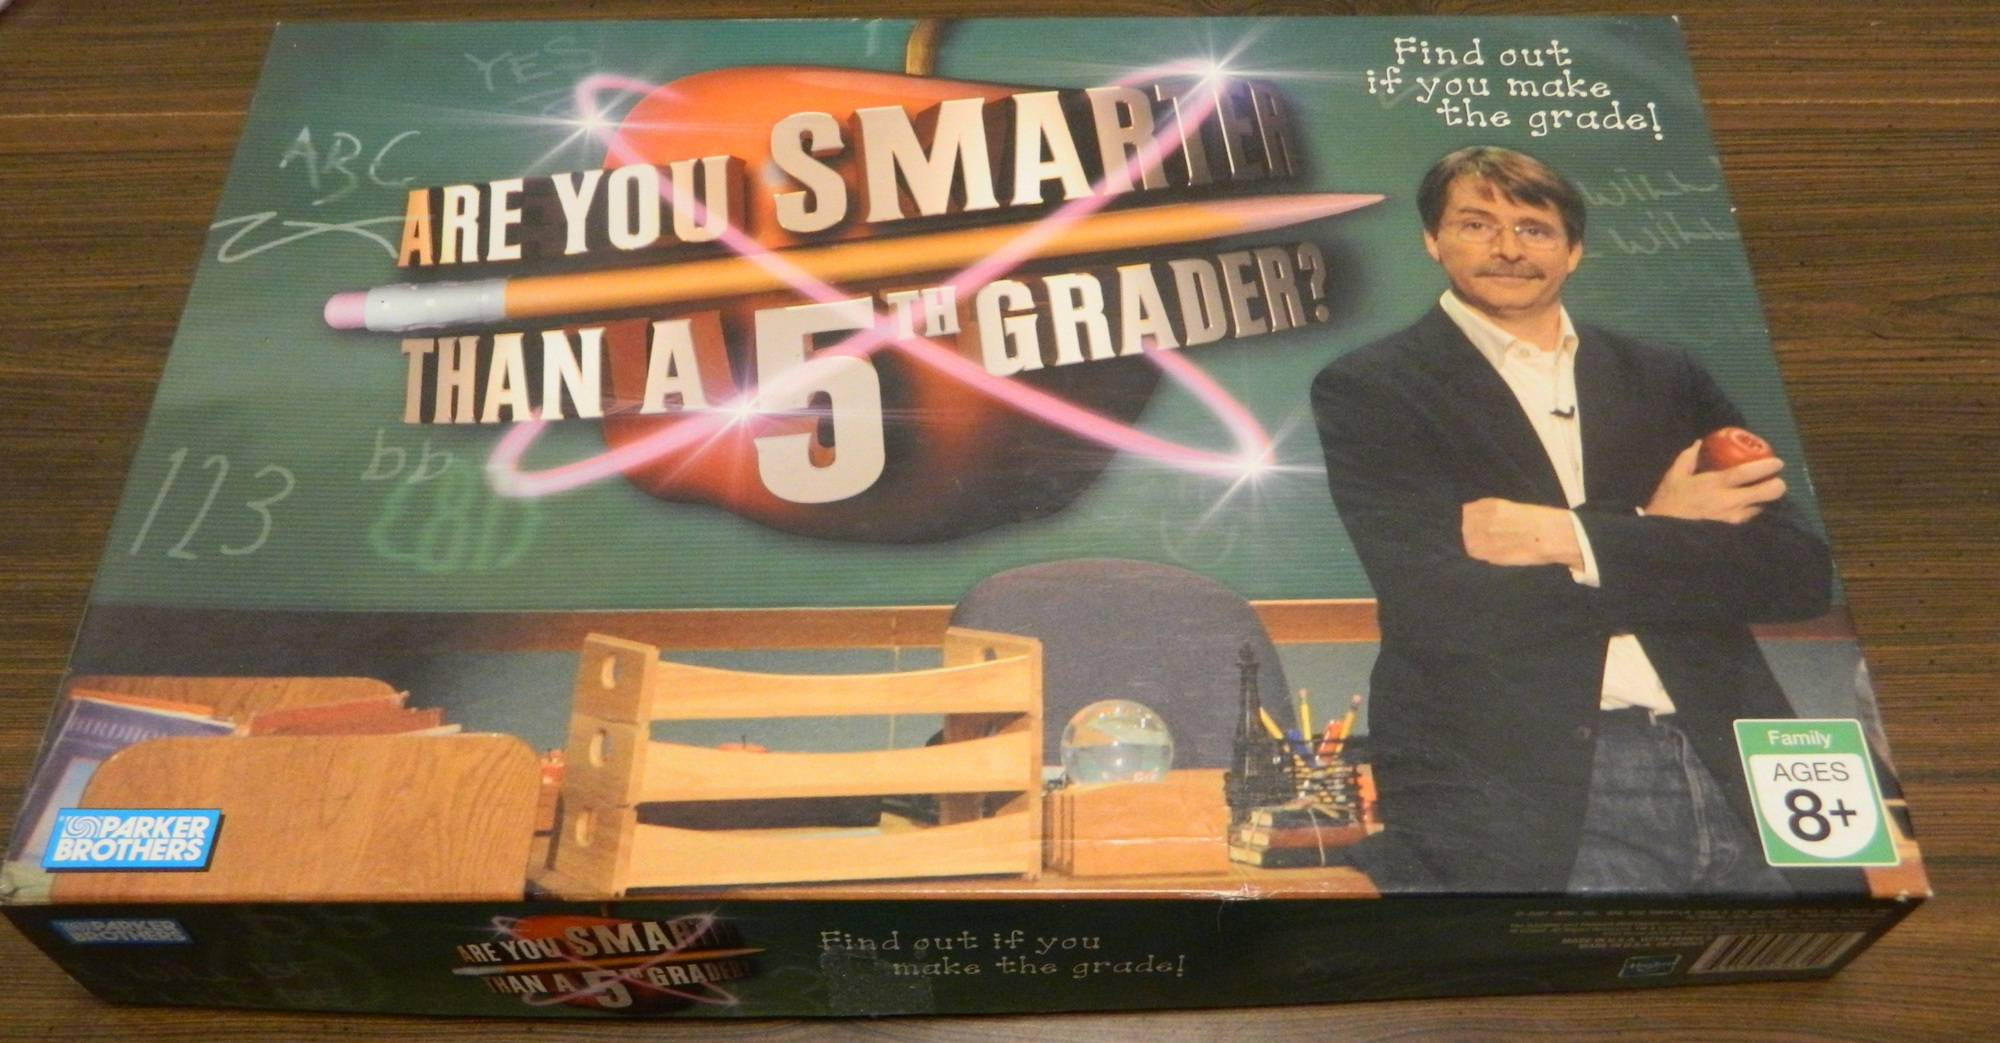 Box for Are You Smarter Than A 5th Grader